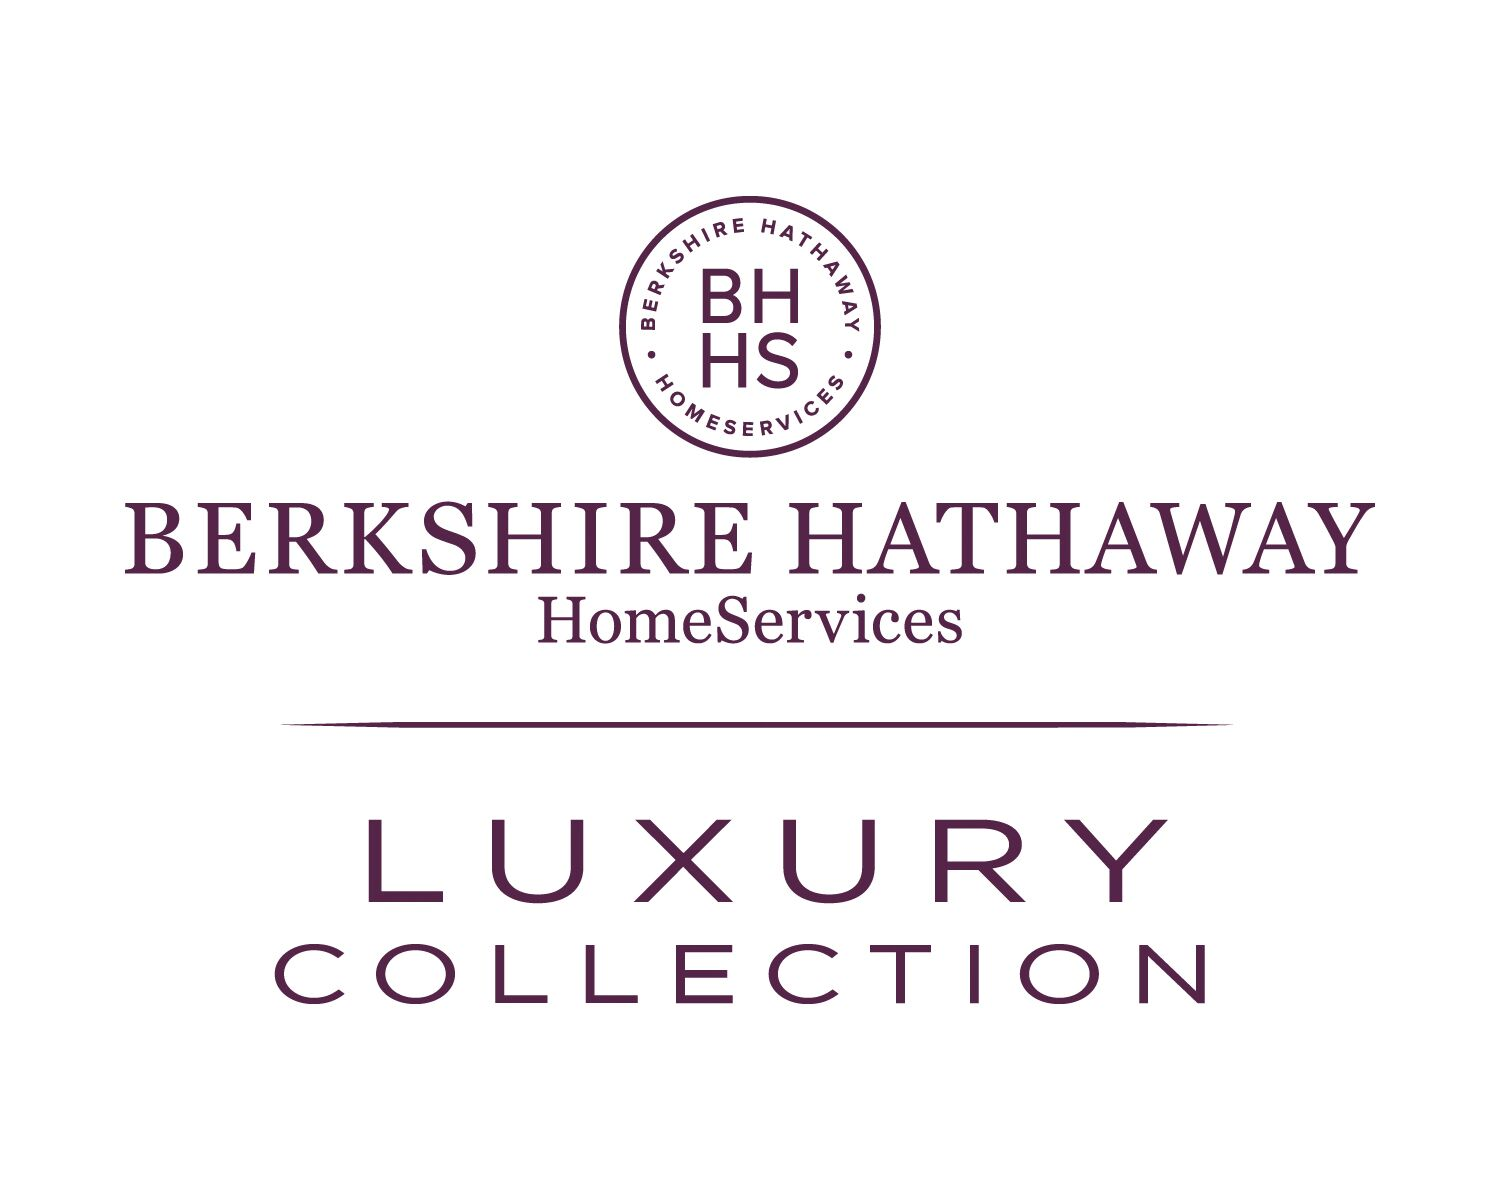 I am now a Berkshire Hathaway Luxury Collection Specialist